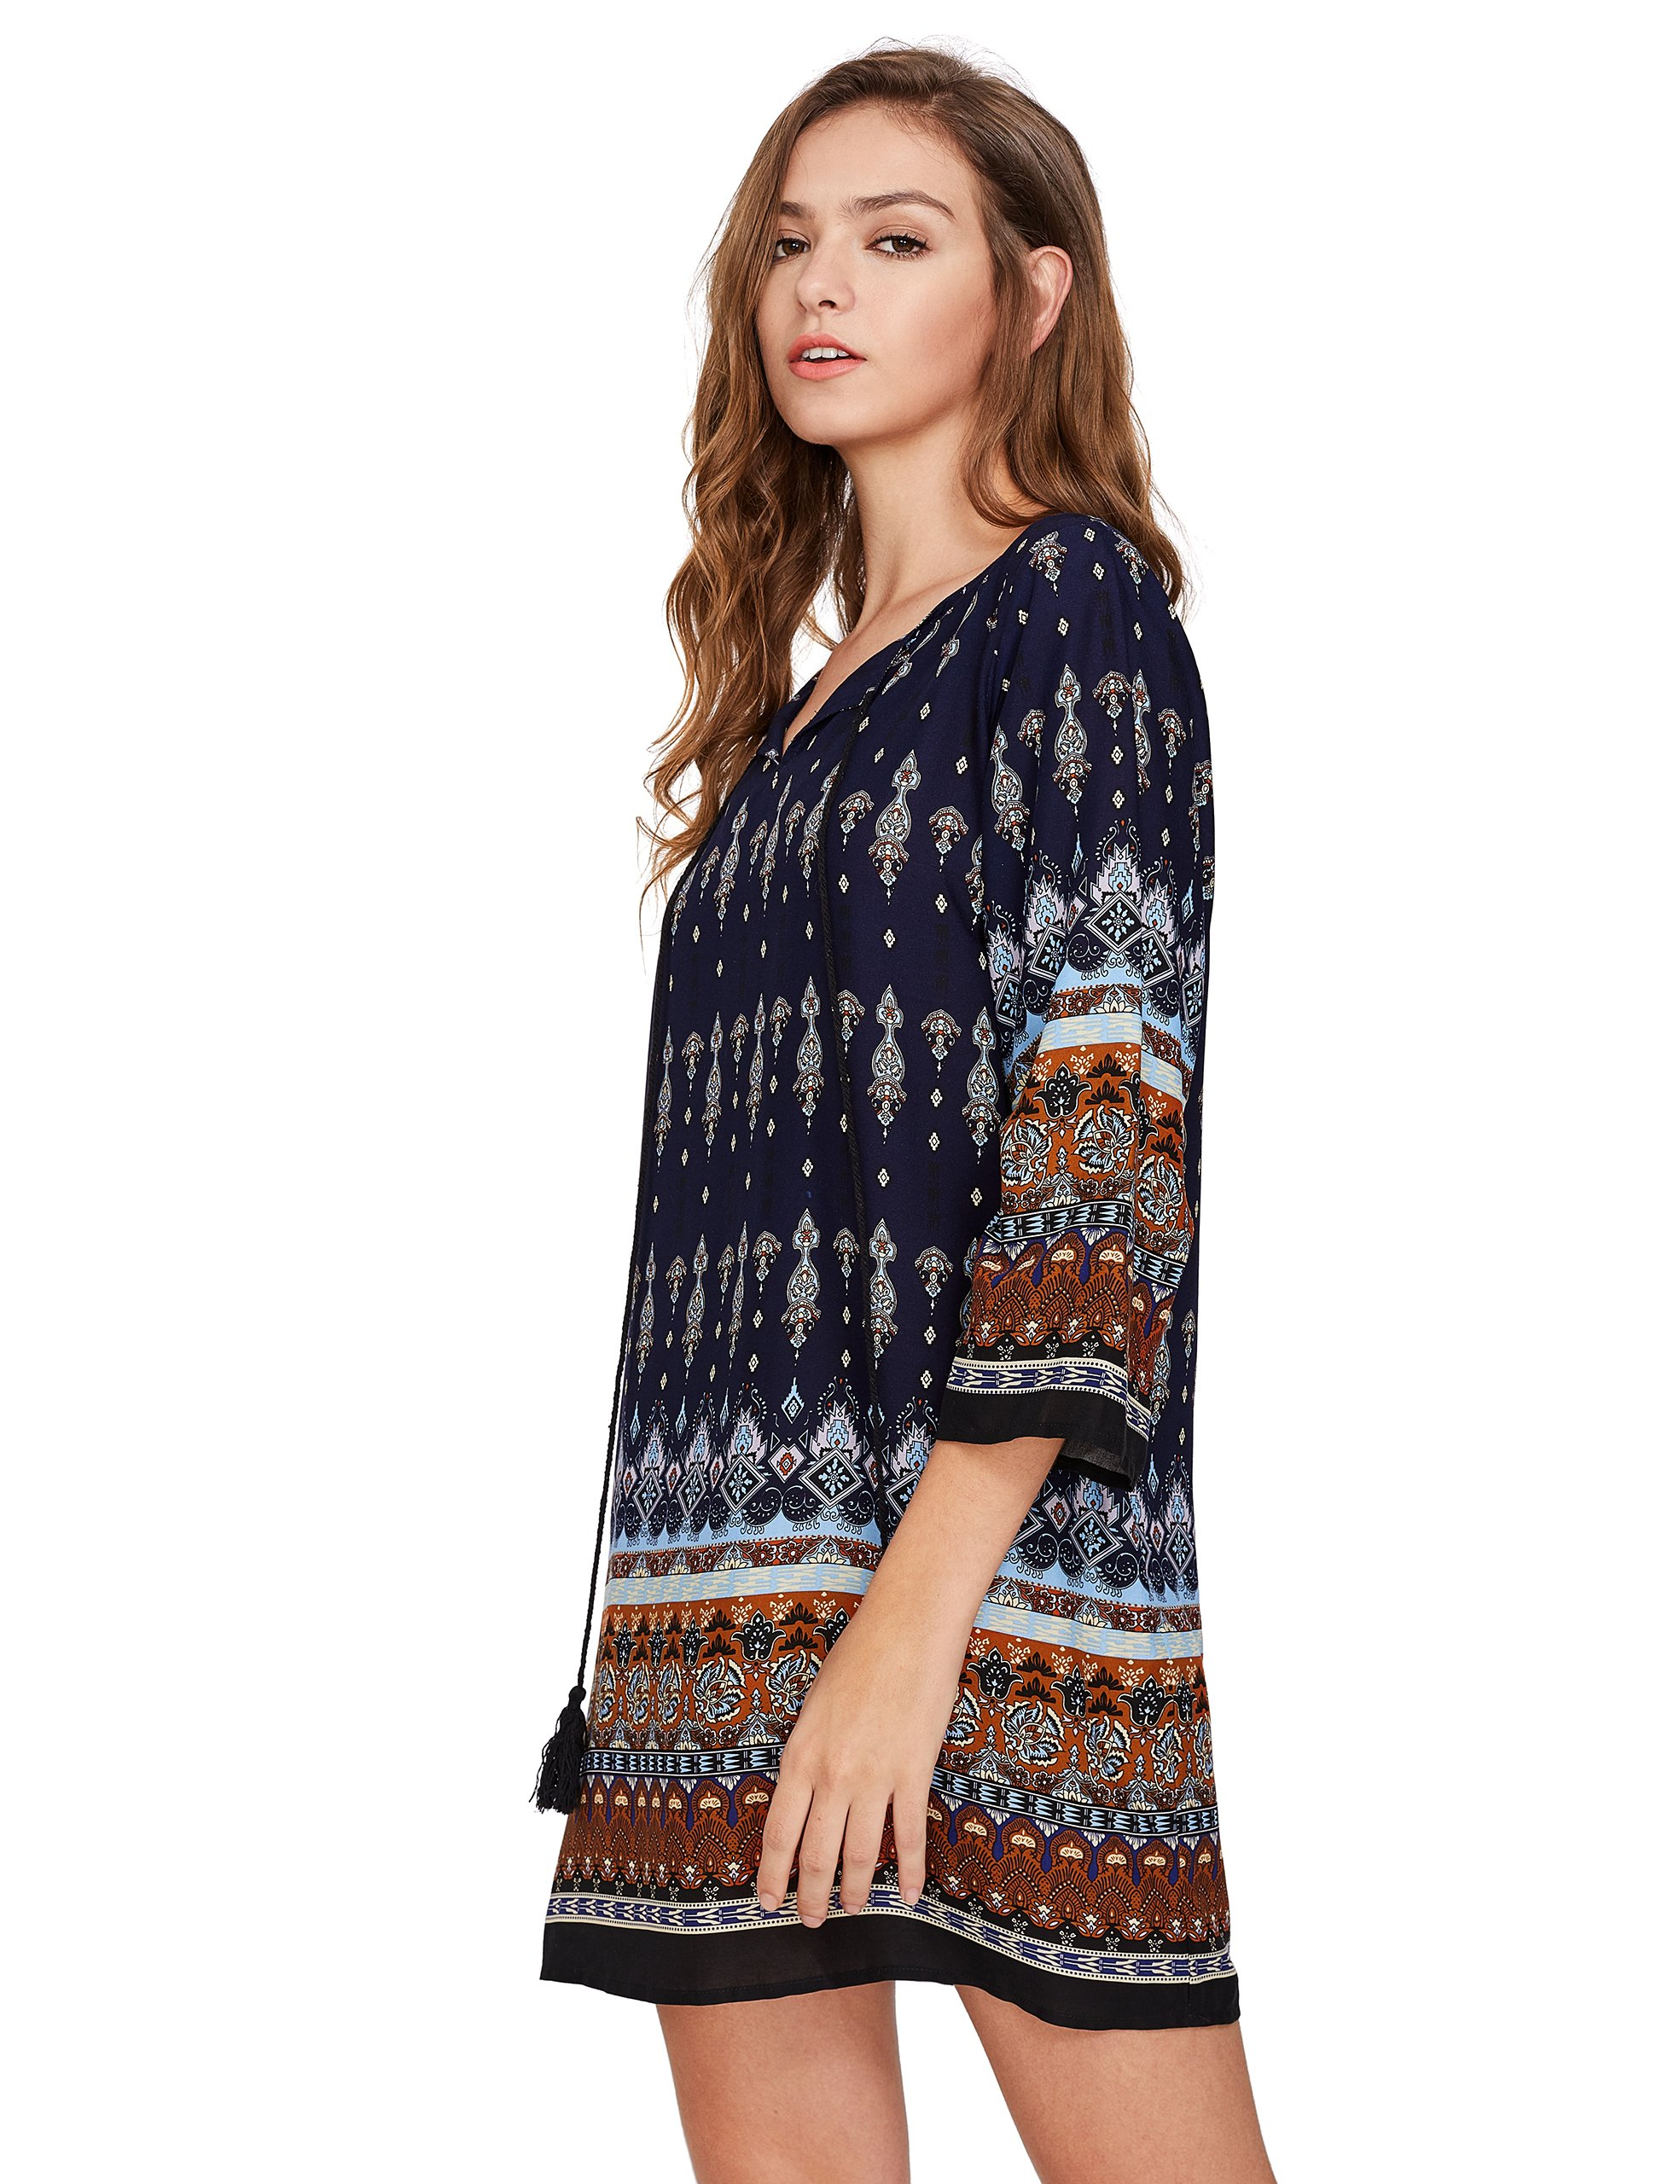 ROMWE Women's Boho Bohemian Tribal Print Summer Beach Dress Navy S by Romwe (Image #3)